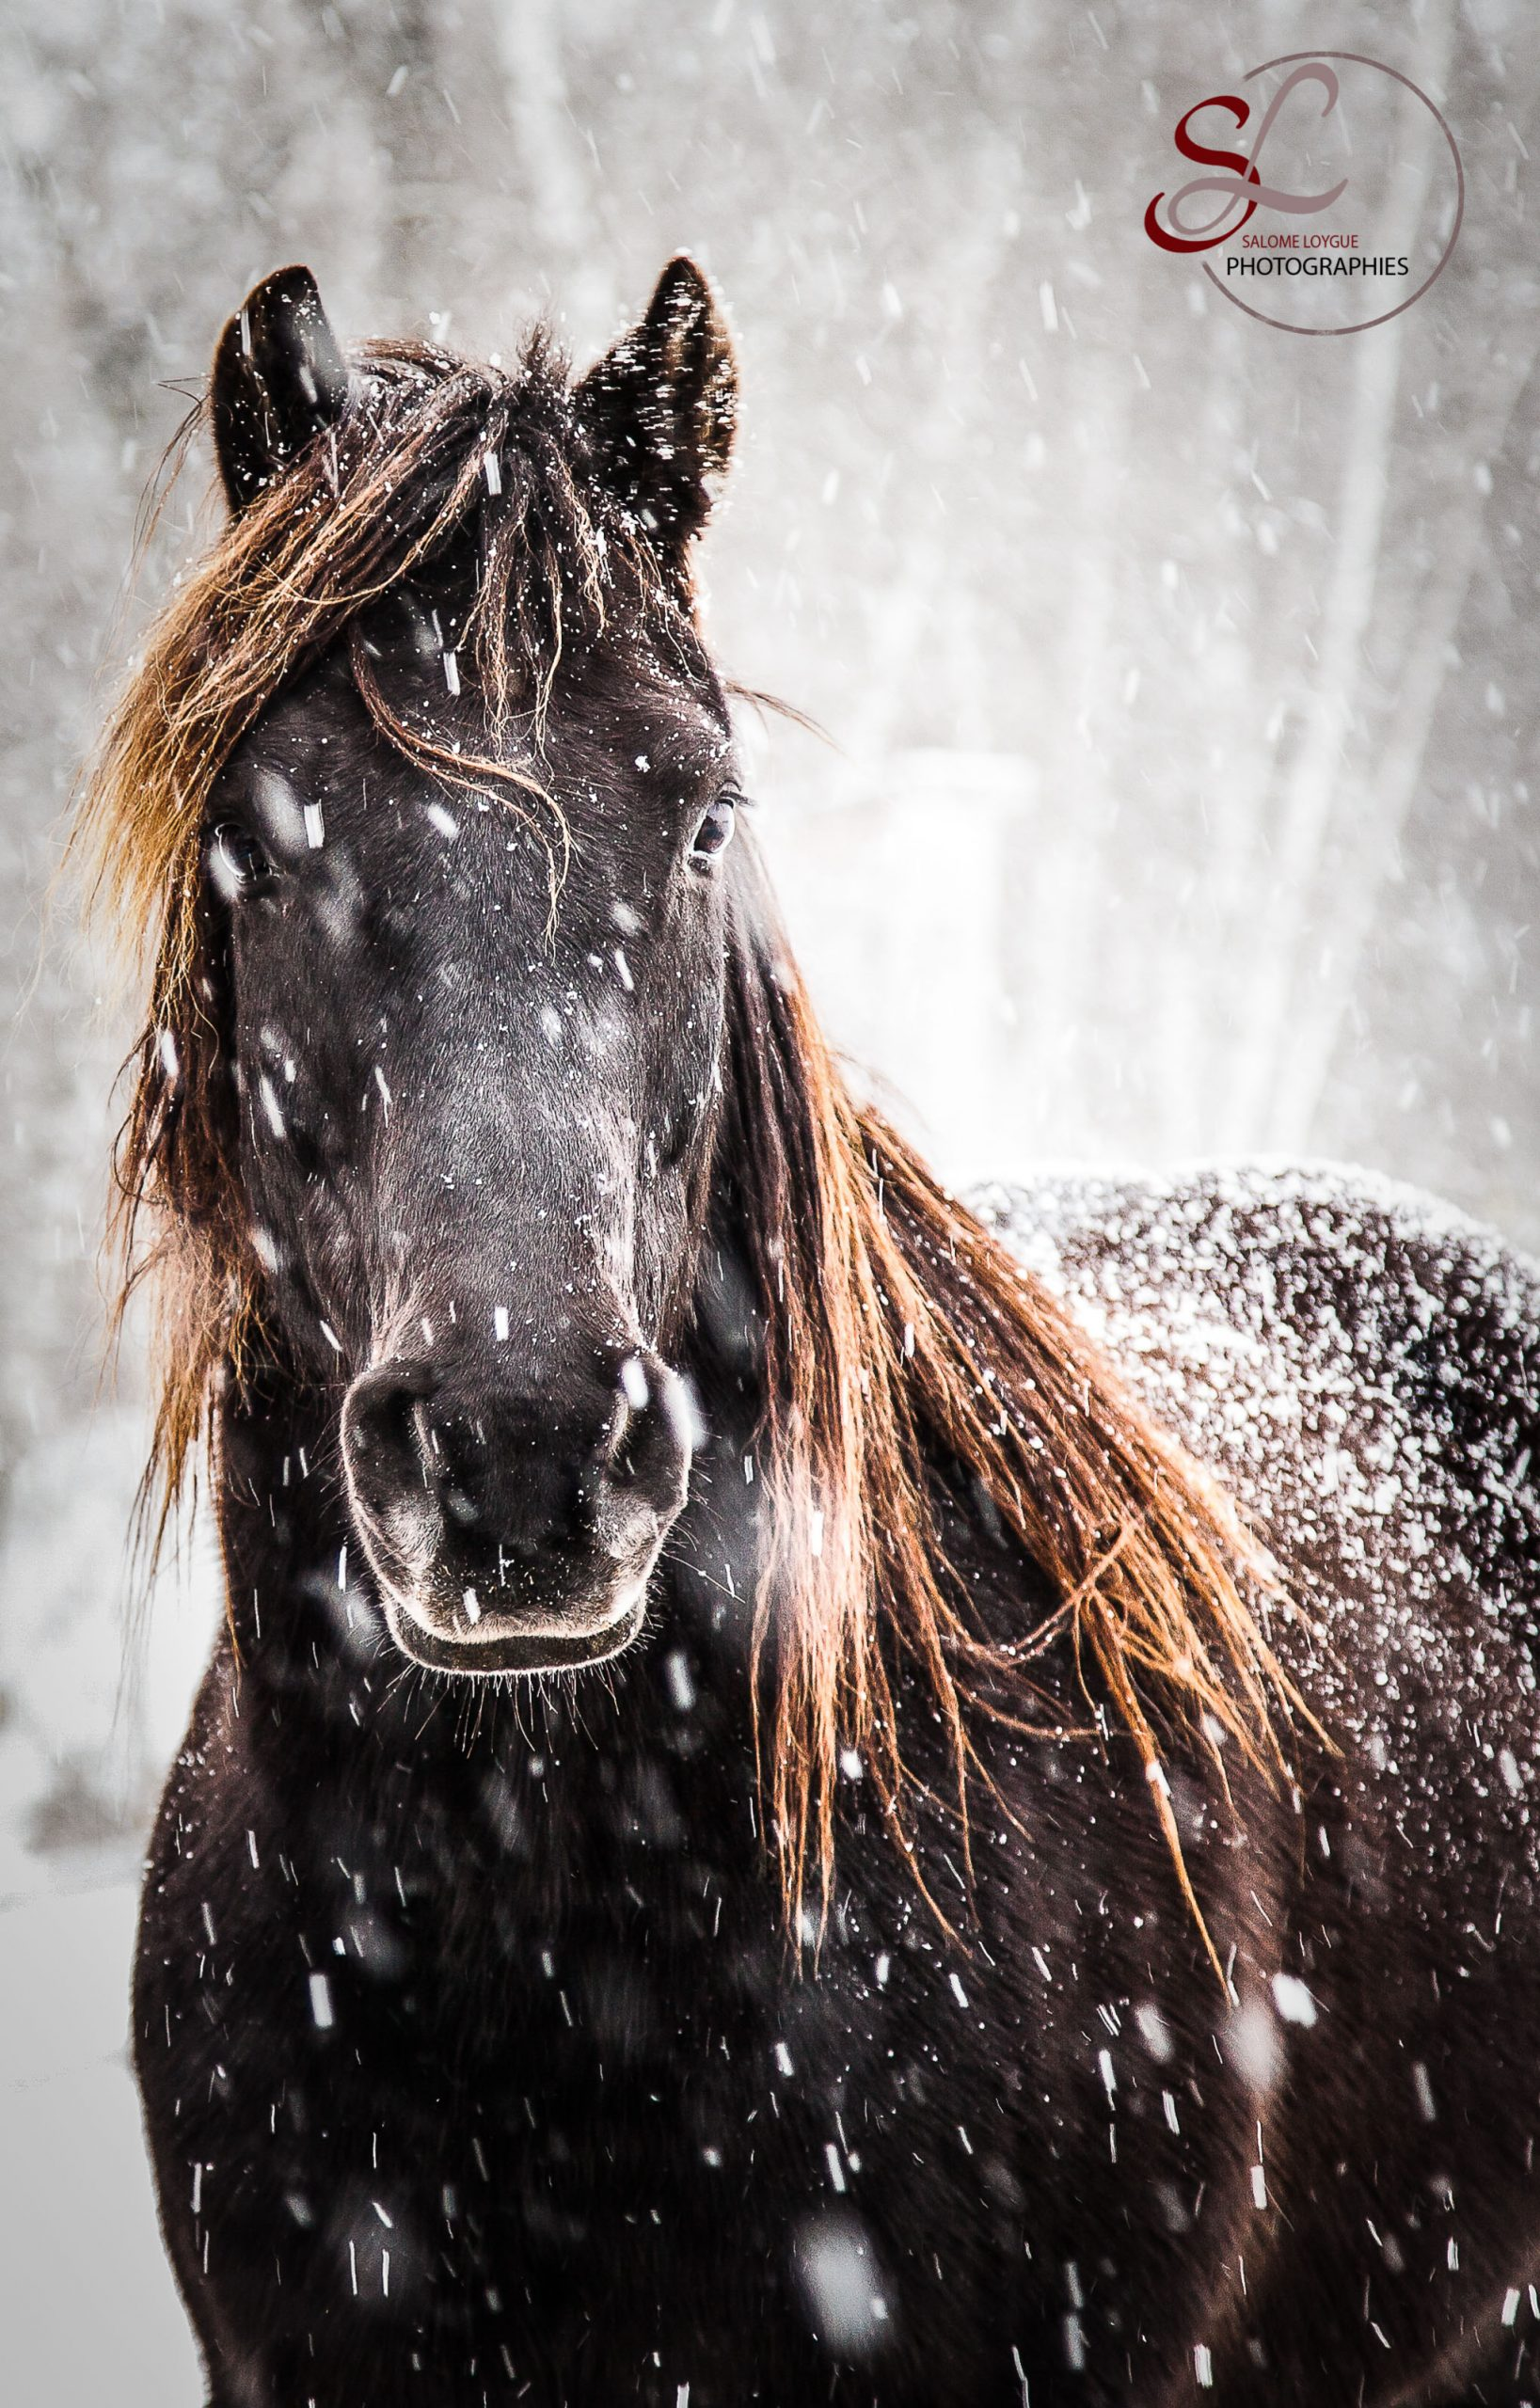 Photographie: Winter is coming.